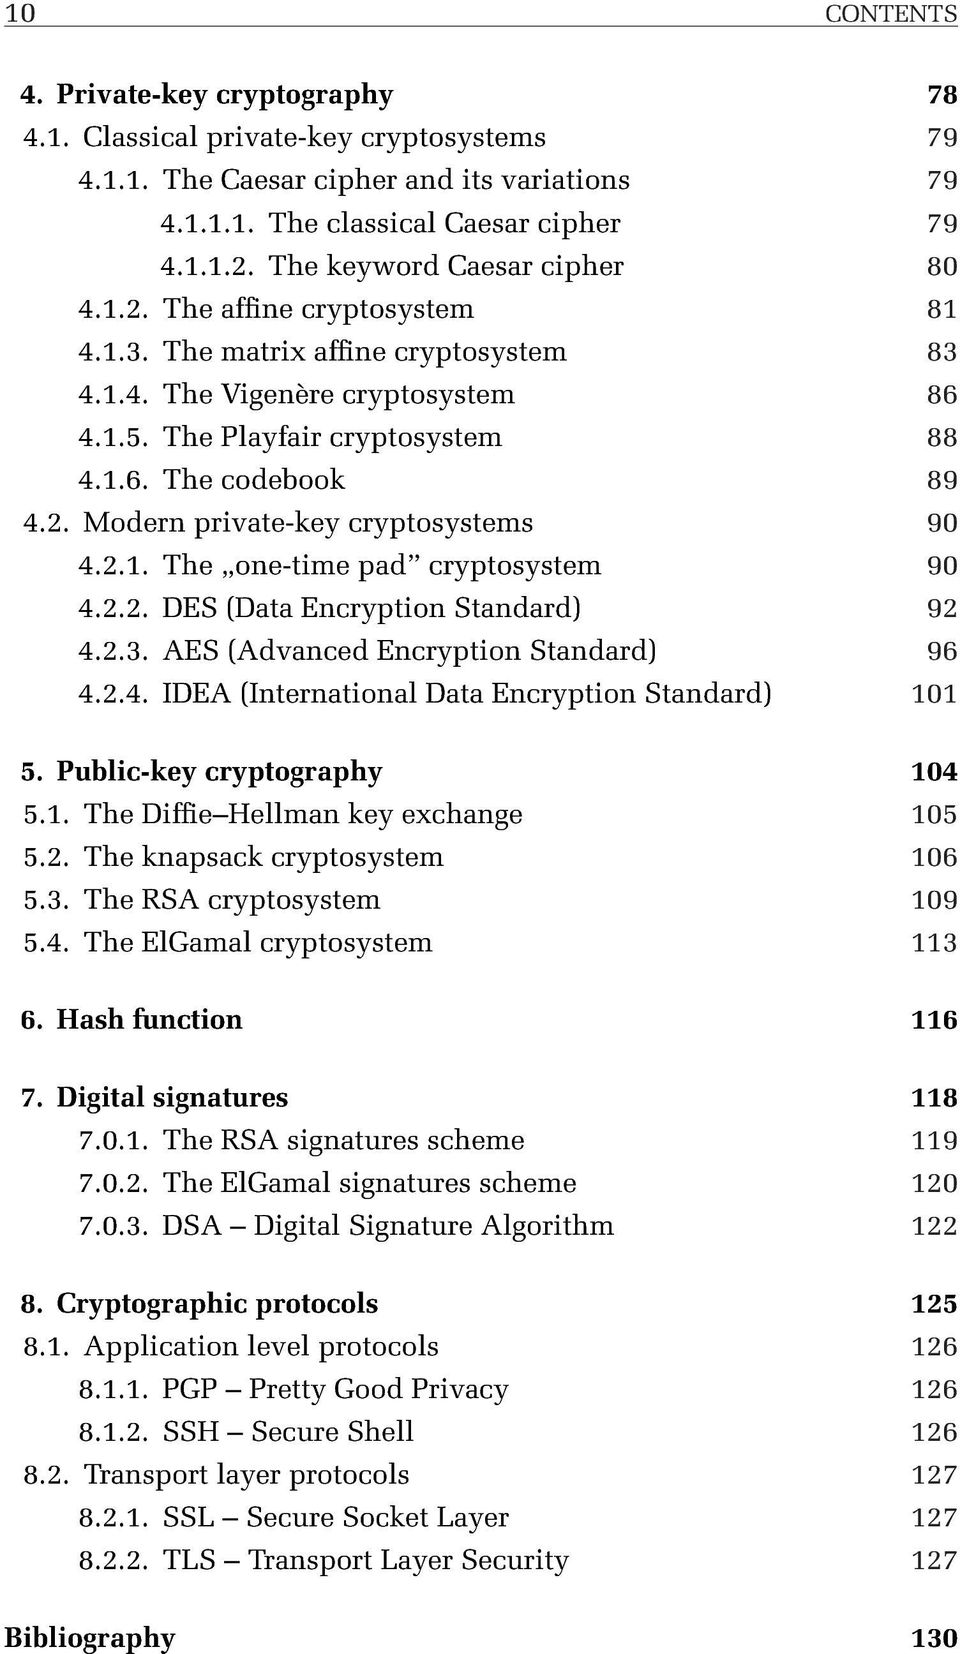 2.1. The one-time pad cryptosystem 90 4.2.2. DES (Data Encryption Standard) 92 4.2.3. AES (Advanced Encryption Standard) 96 4.2.4. IDEA (International Data Encryption Standard) 101 5.